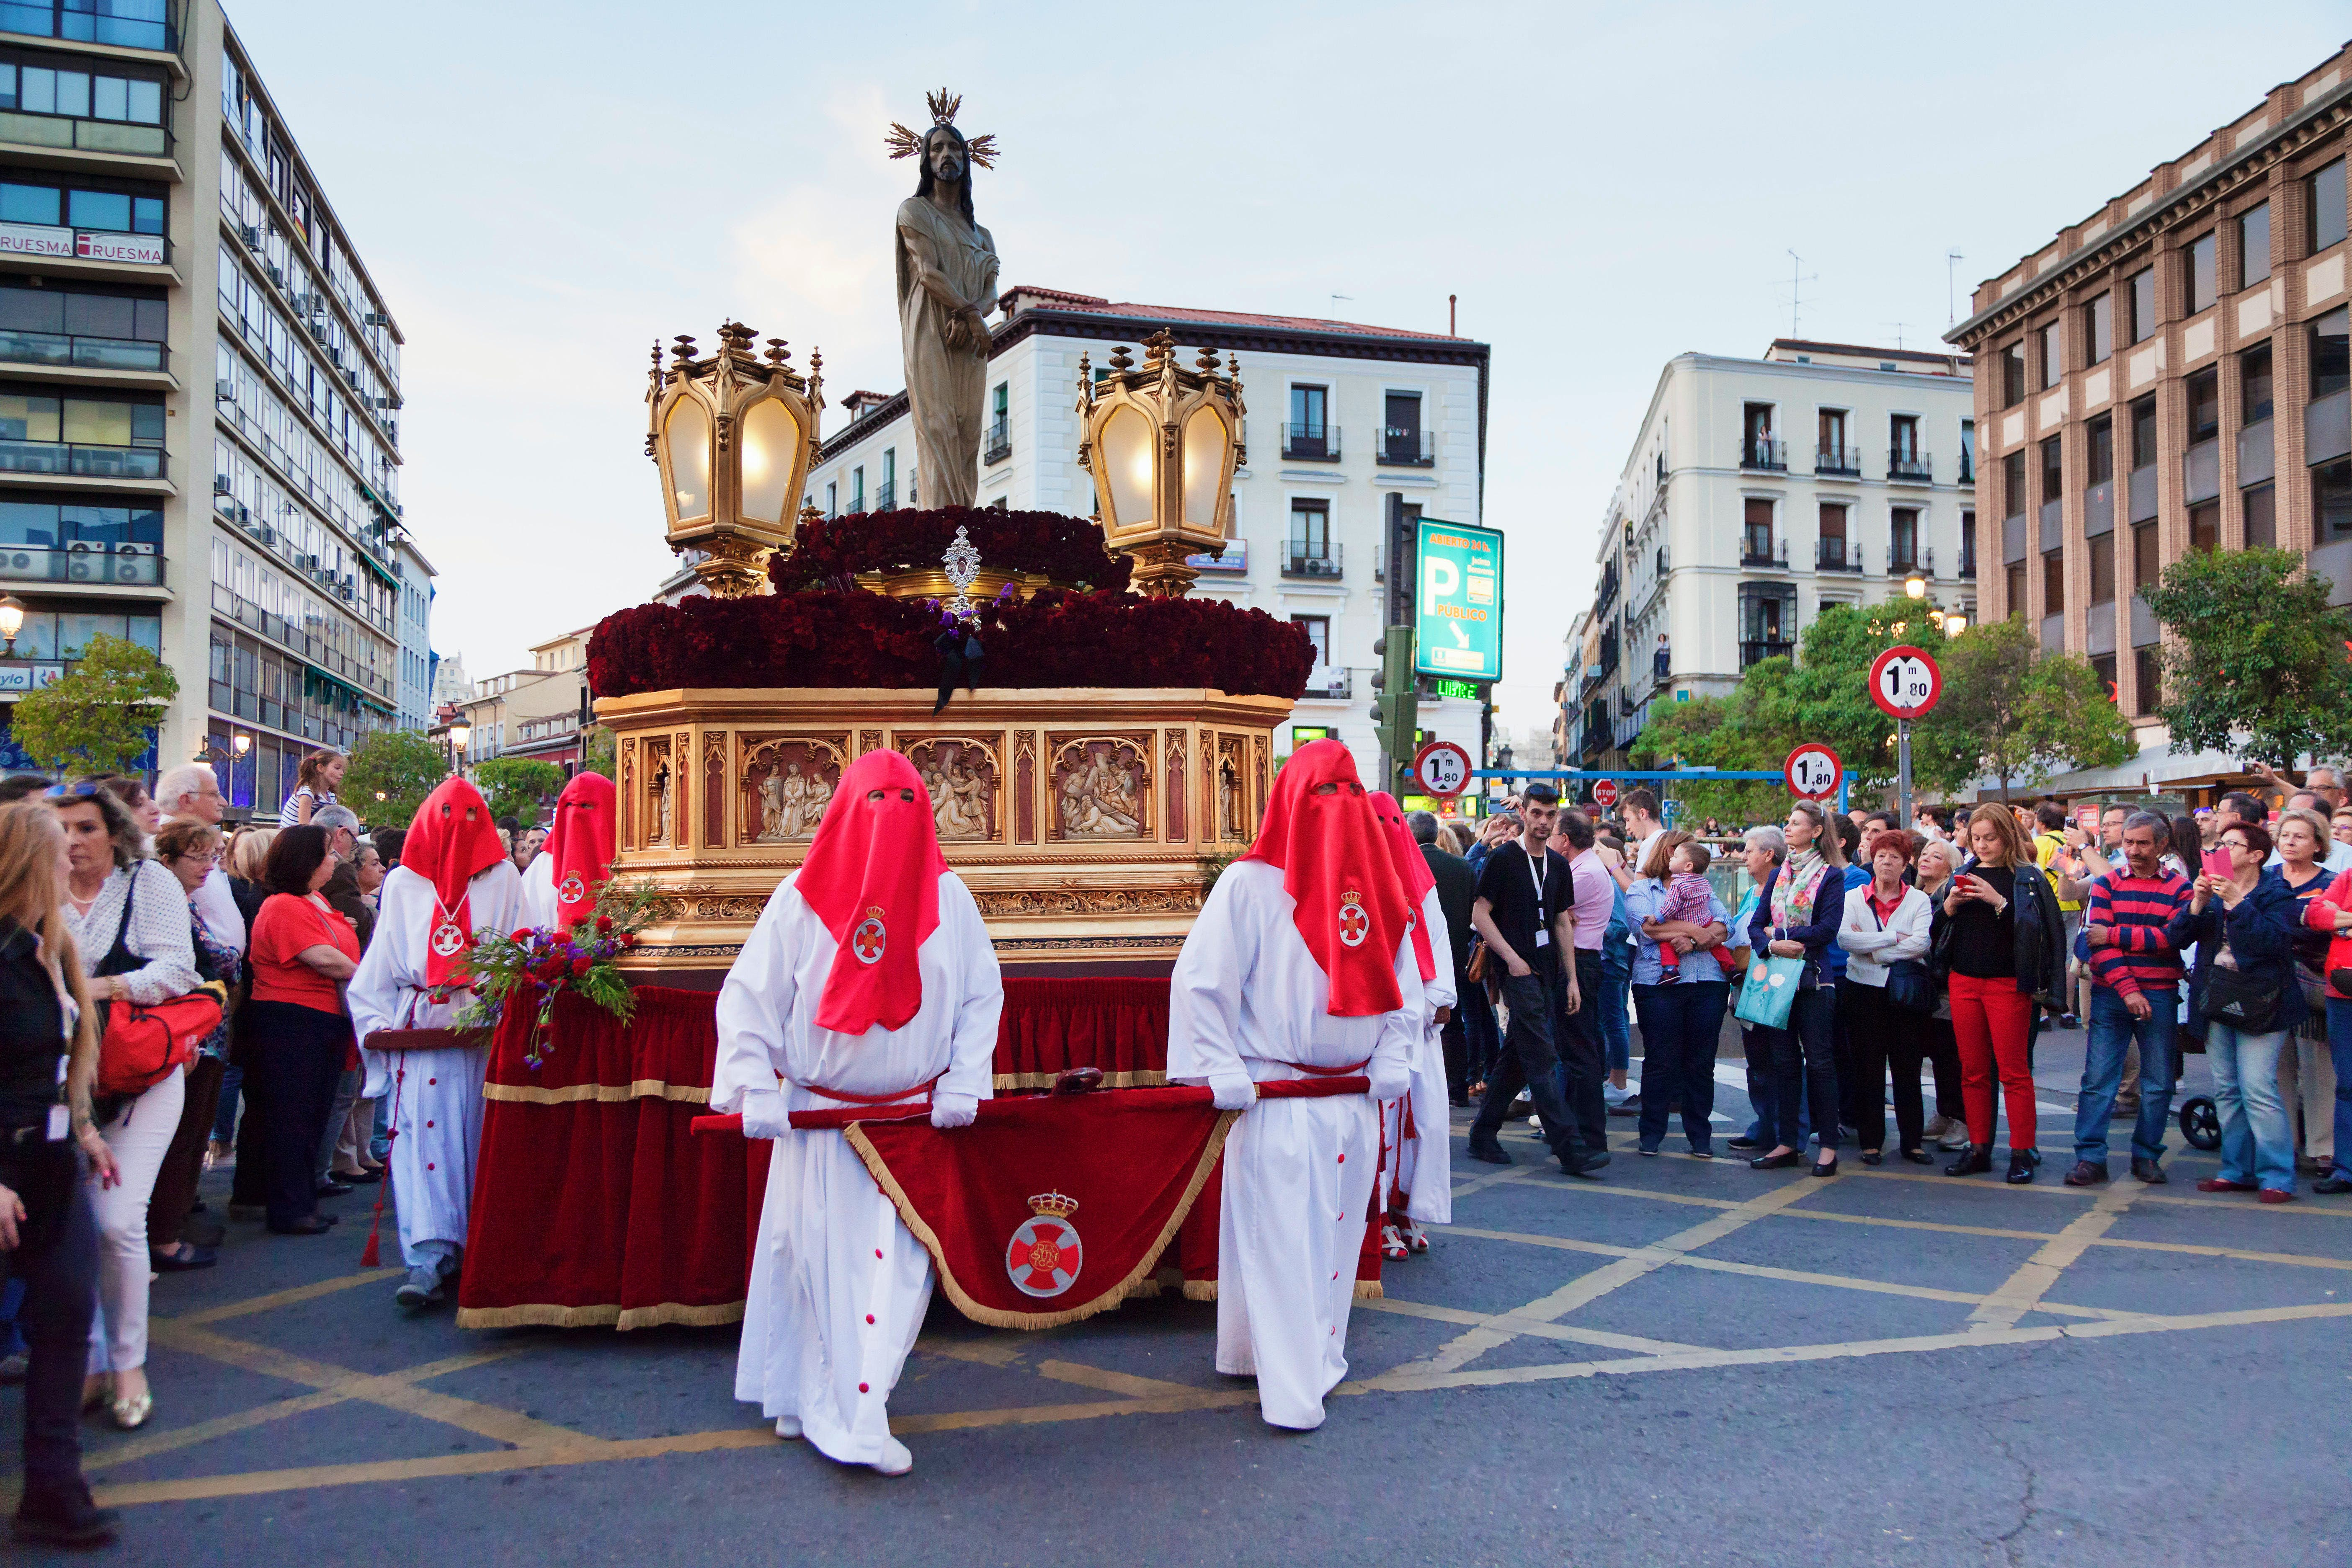 People parading through the streets dressed in white robes with red hoods covering their faces during Semana Santa in Madrid, Spain.